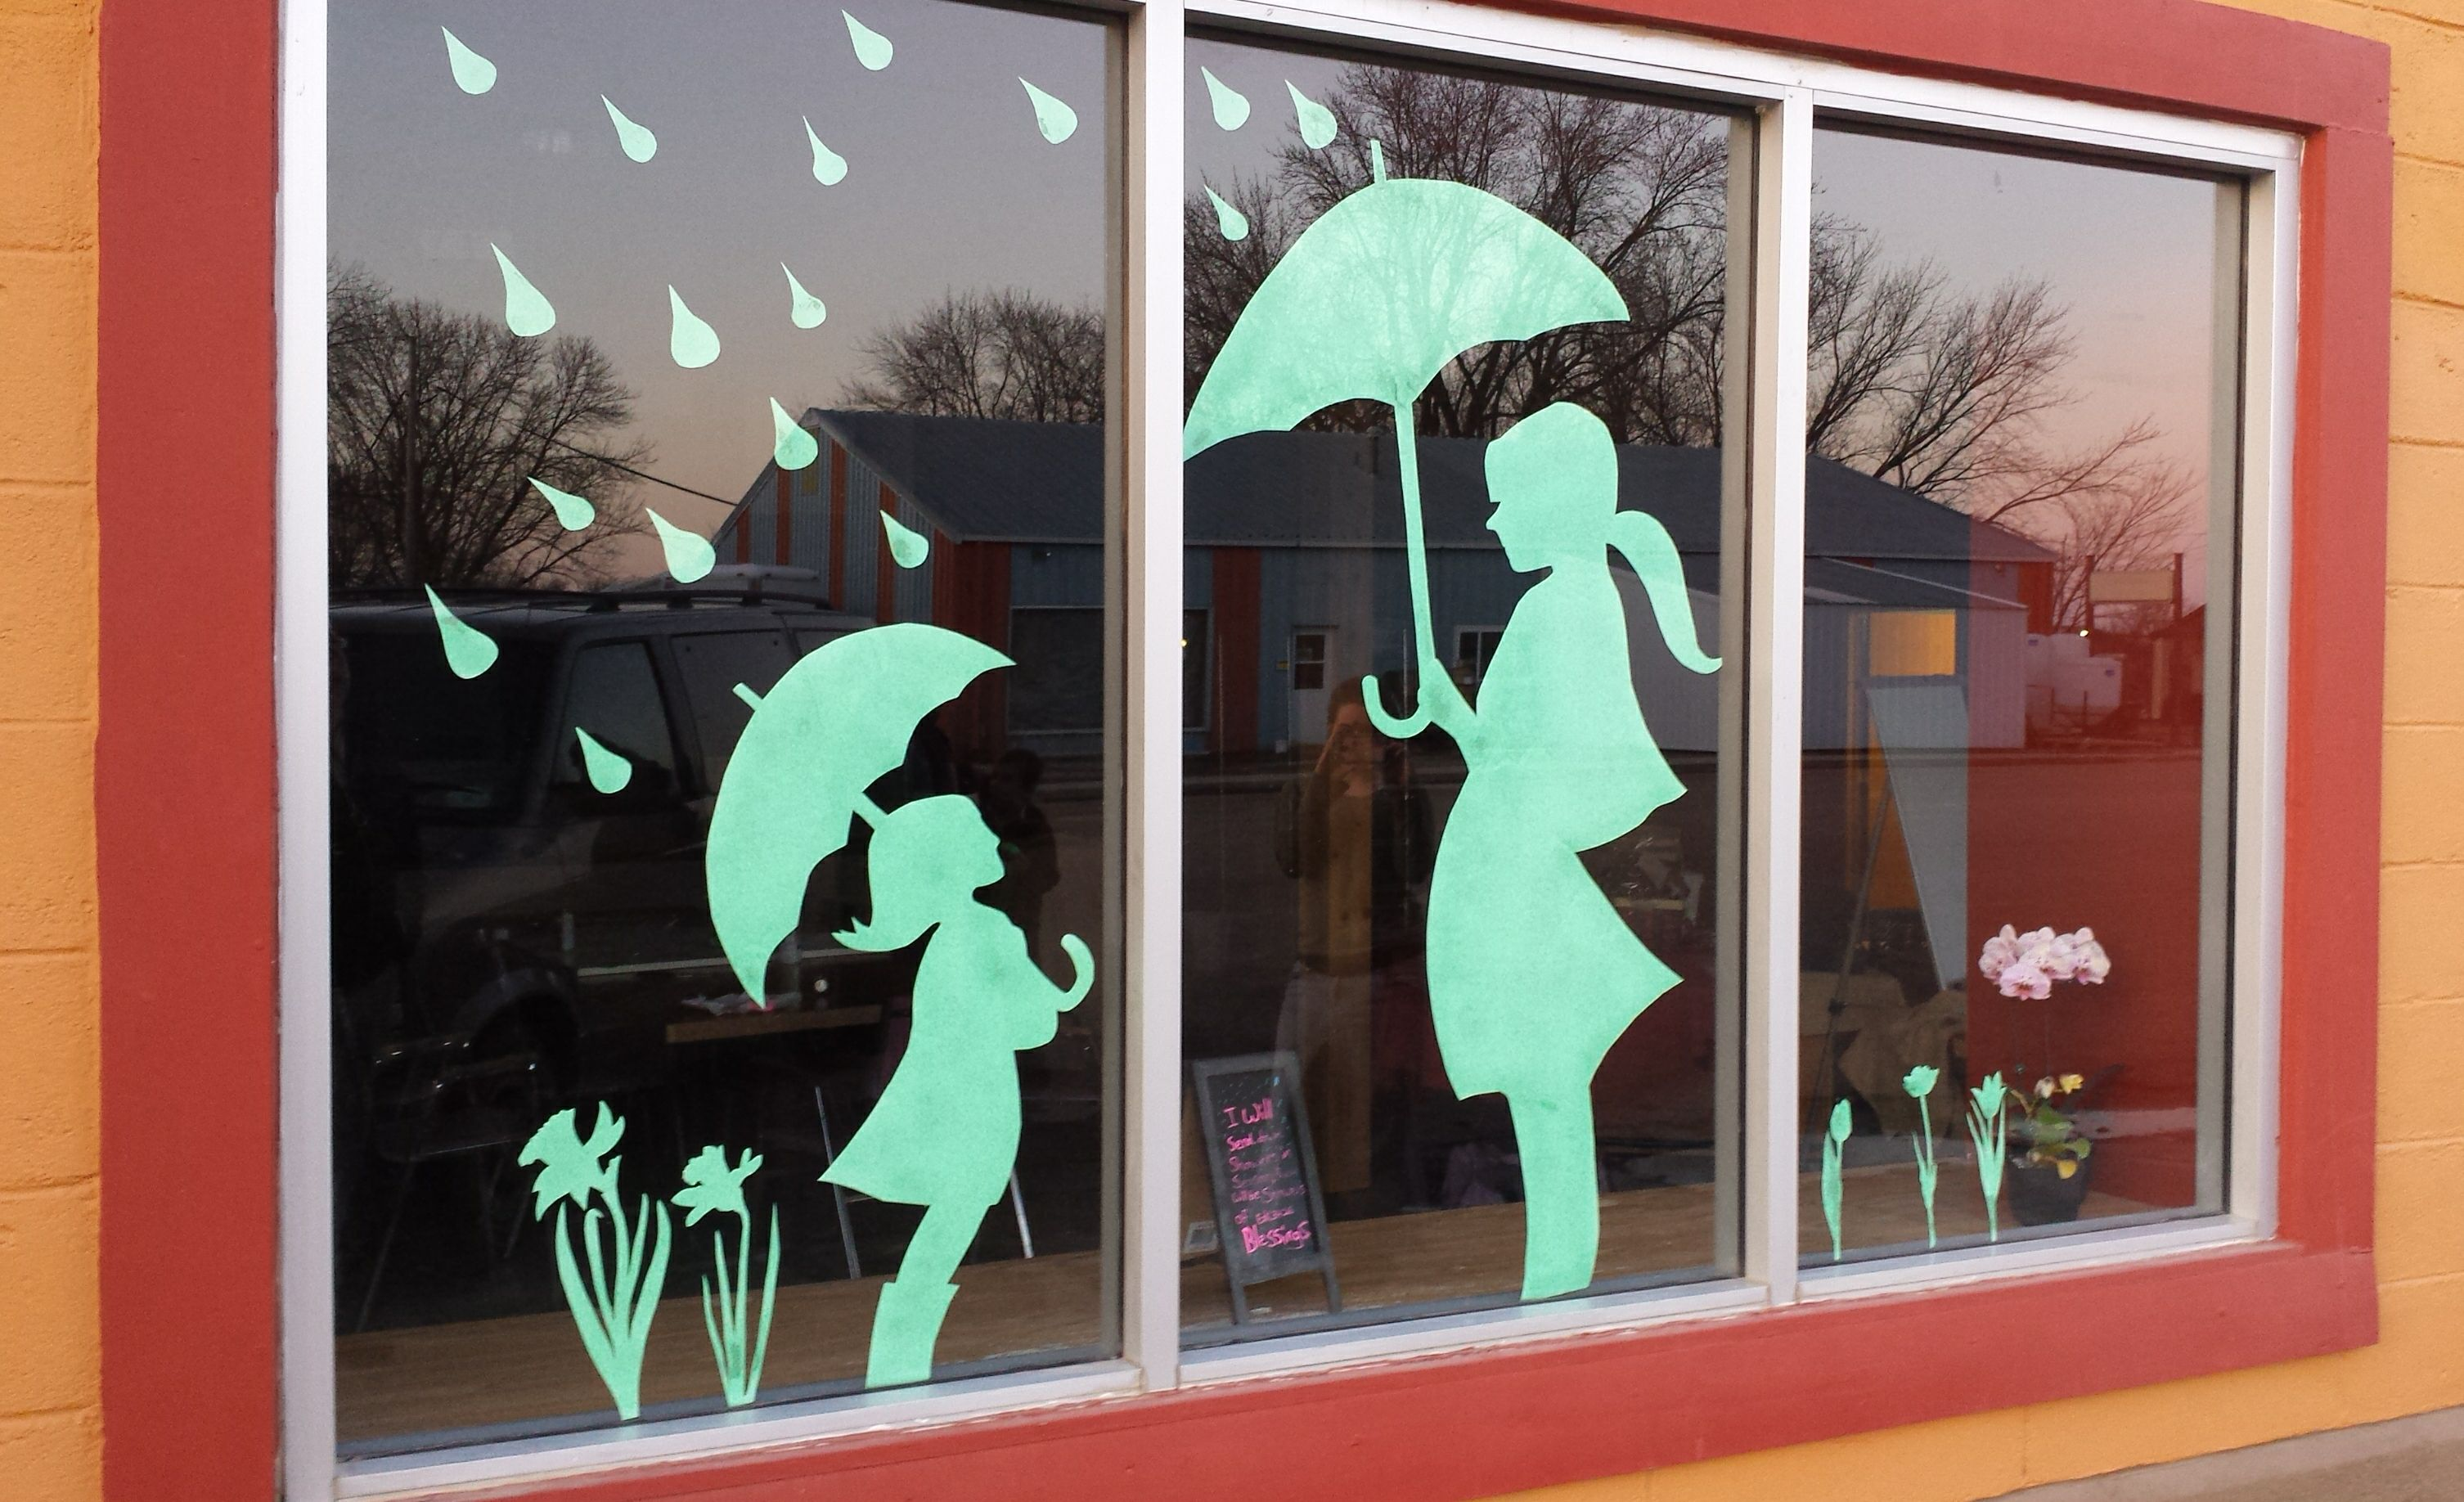 Spring Window Display April Showers Bring May Flowers Can Easily Morph Into Mother S Day